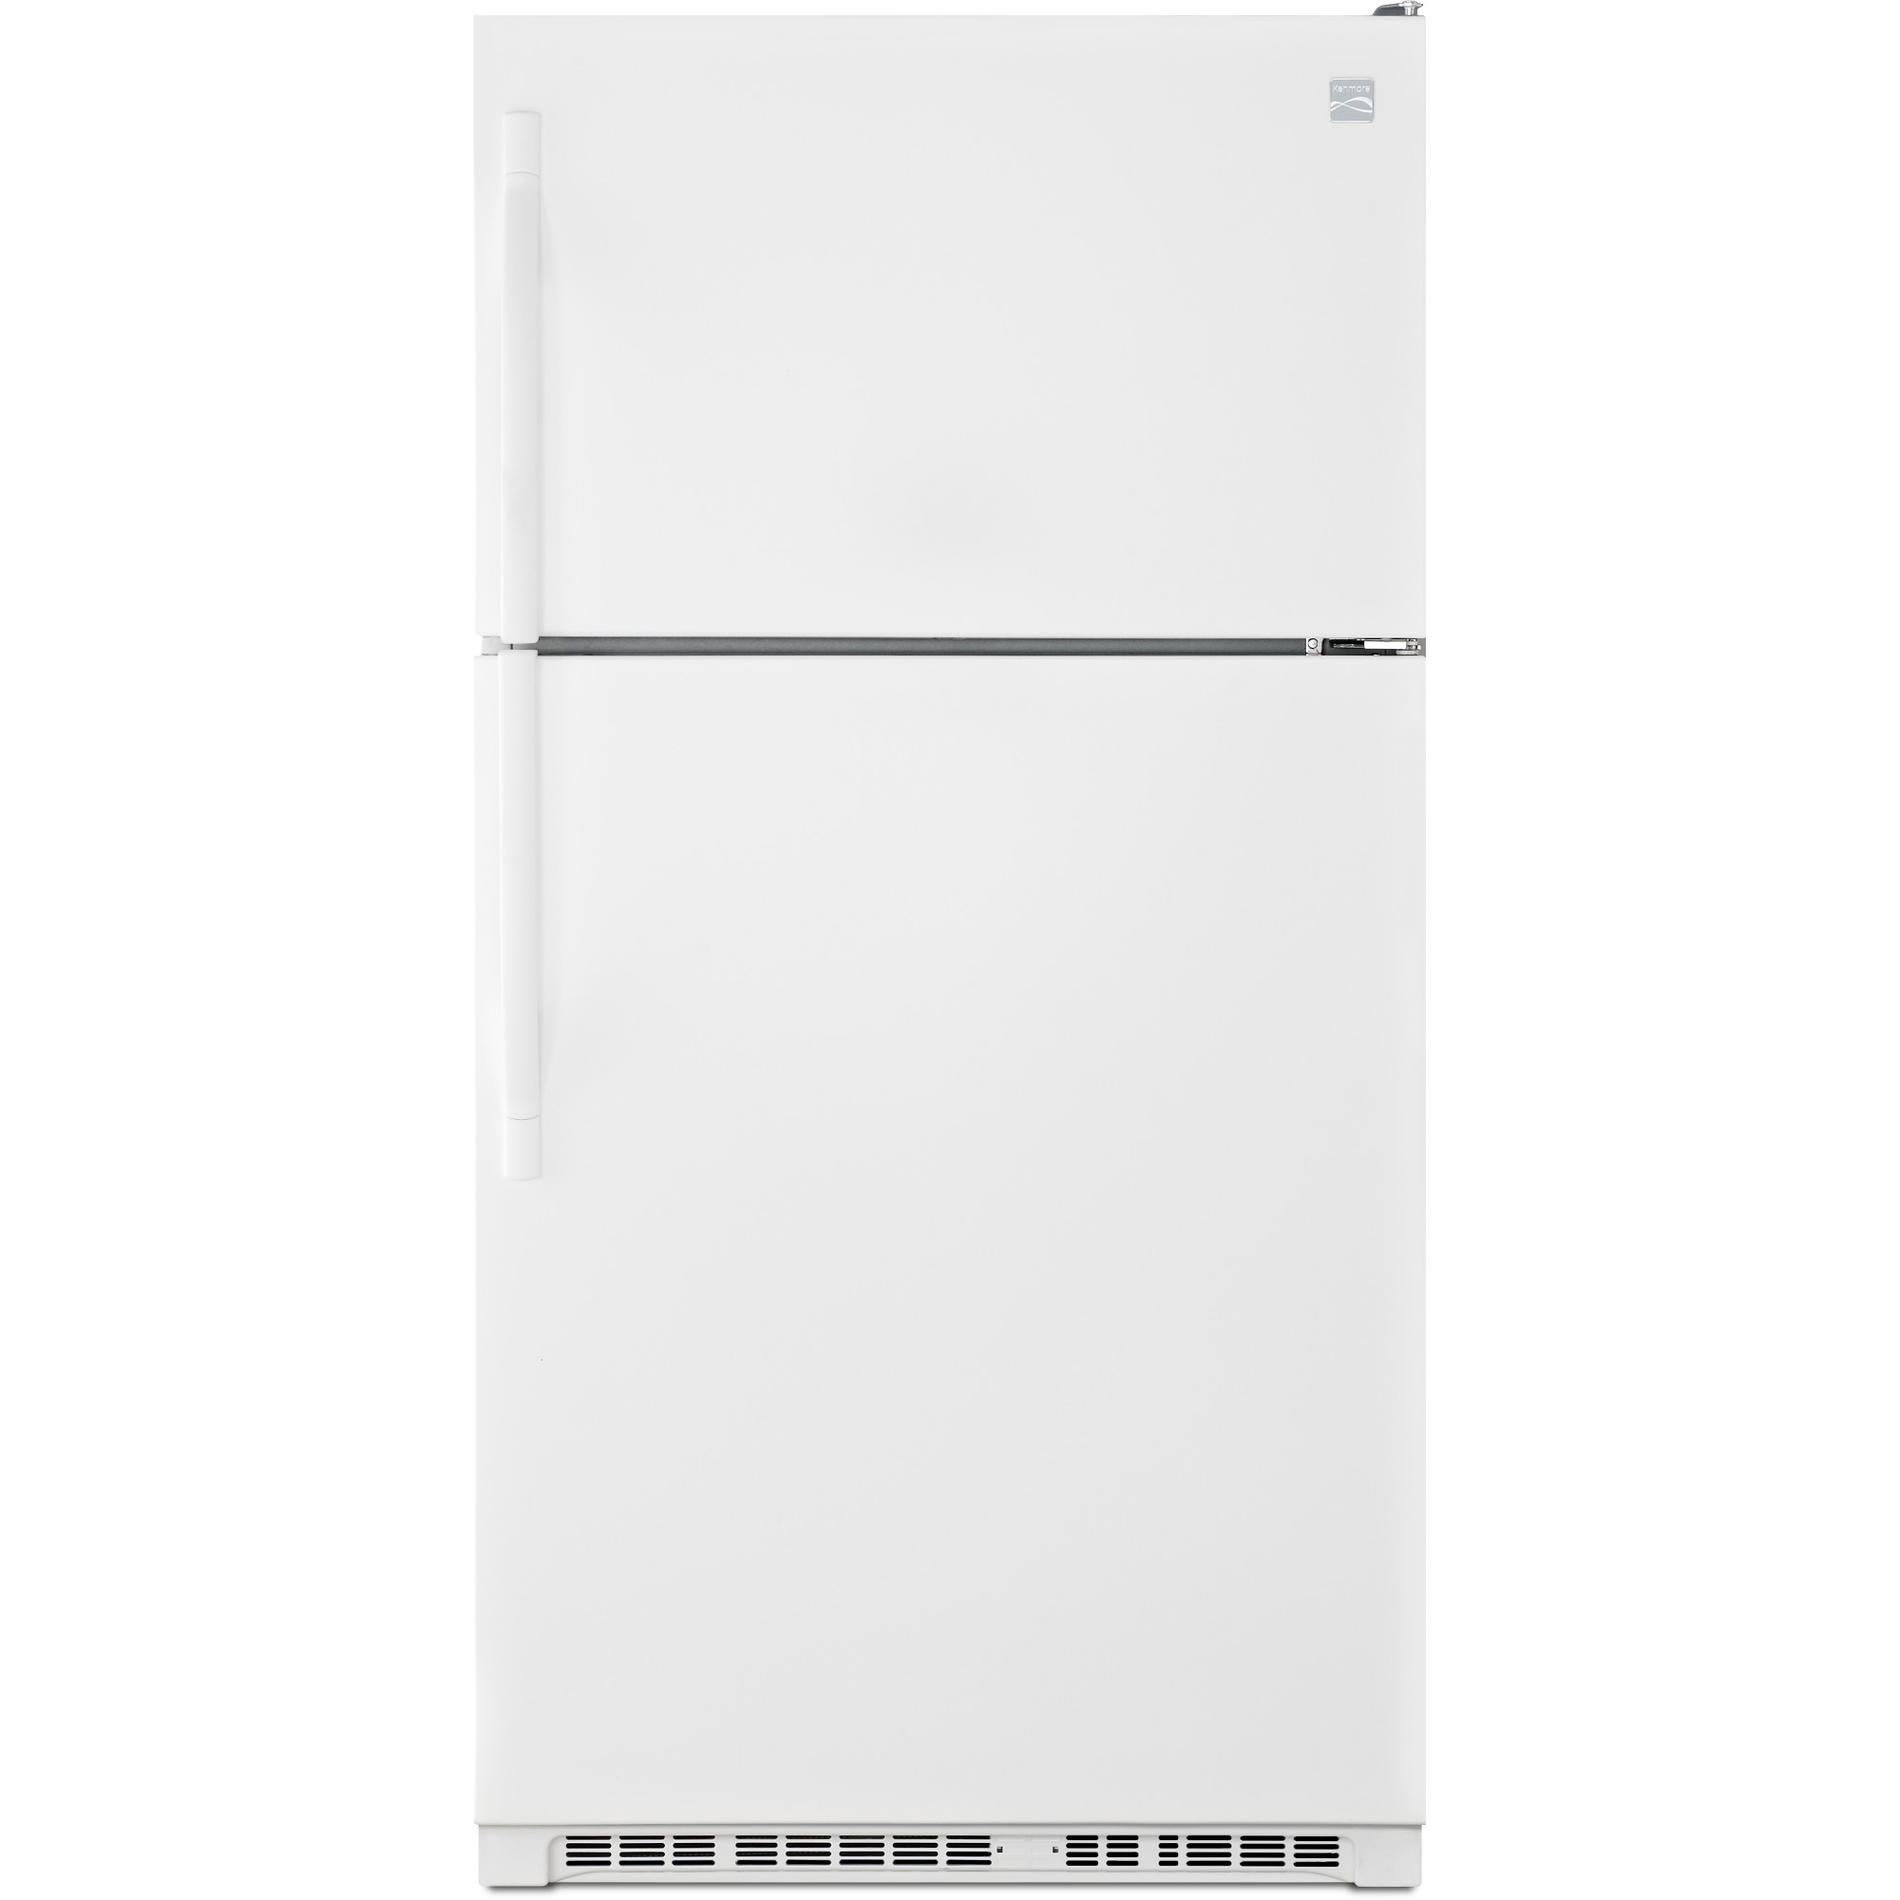 60212-20-5-cu-ft-Top-Freezer-Refrigerator-White